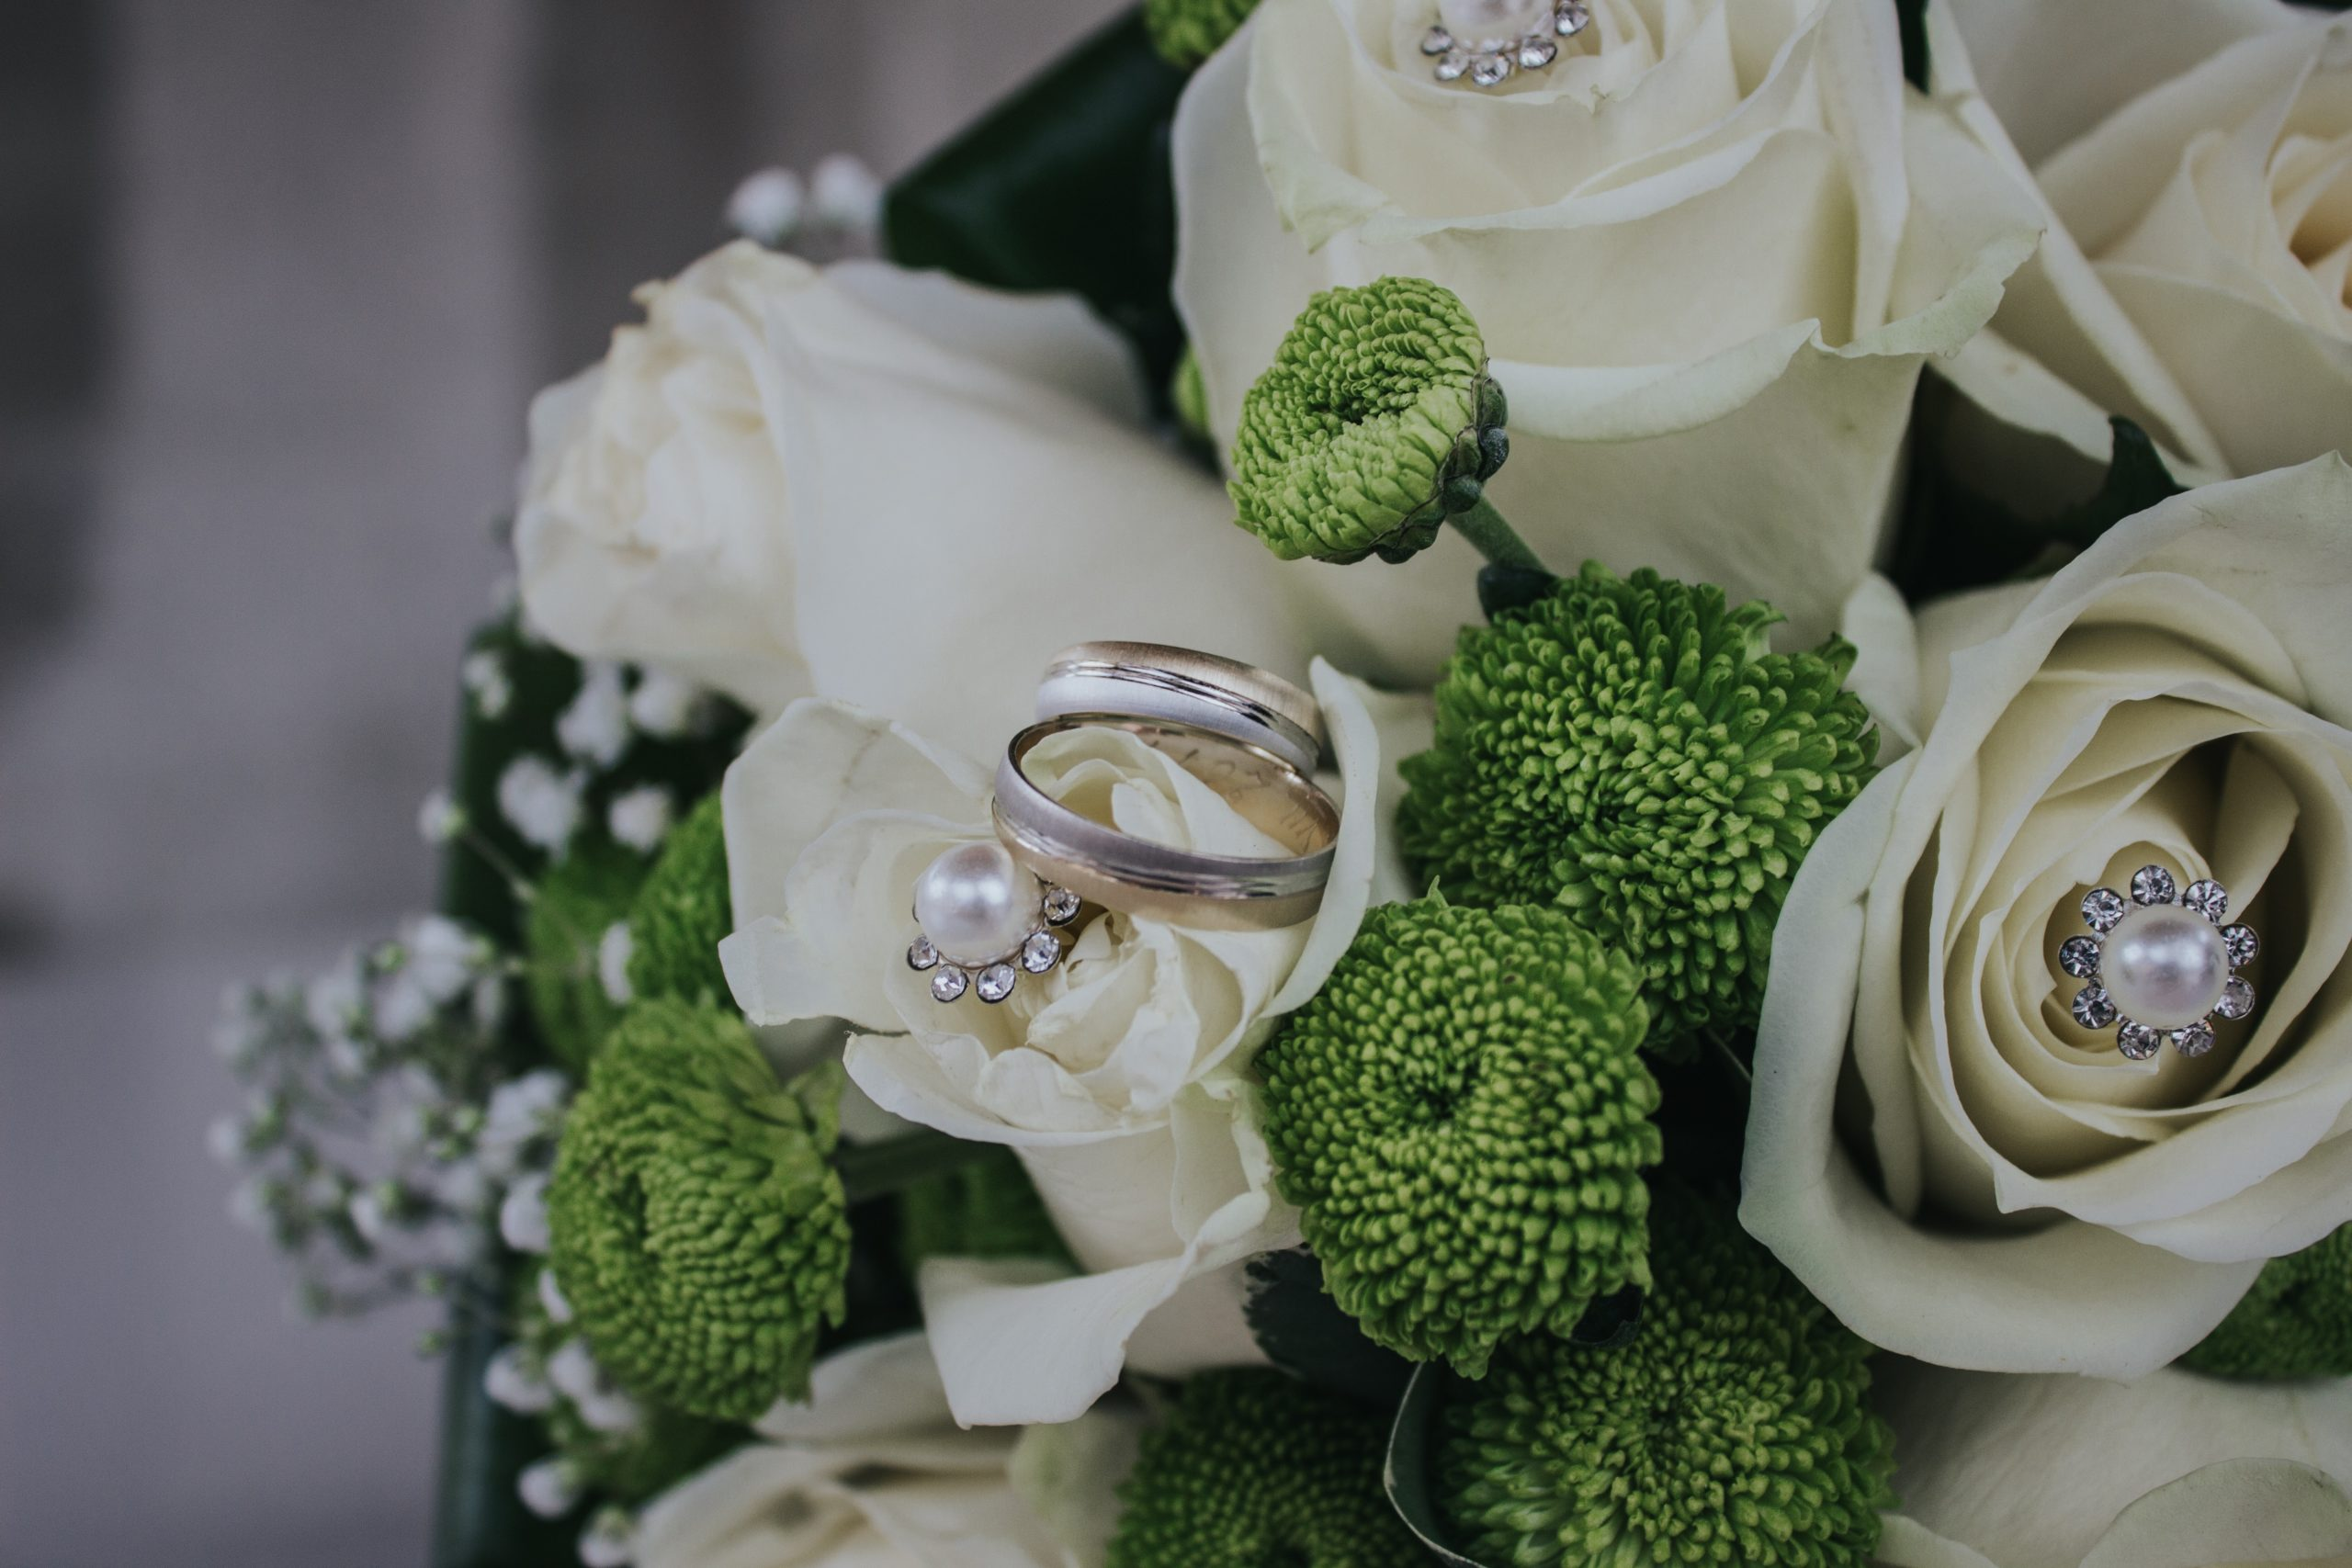 red-and-green-petaled-flowers-bouquet-with-silver-colored-948189